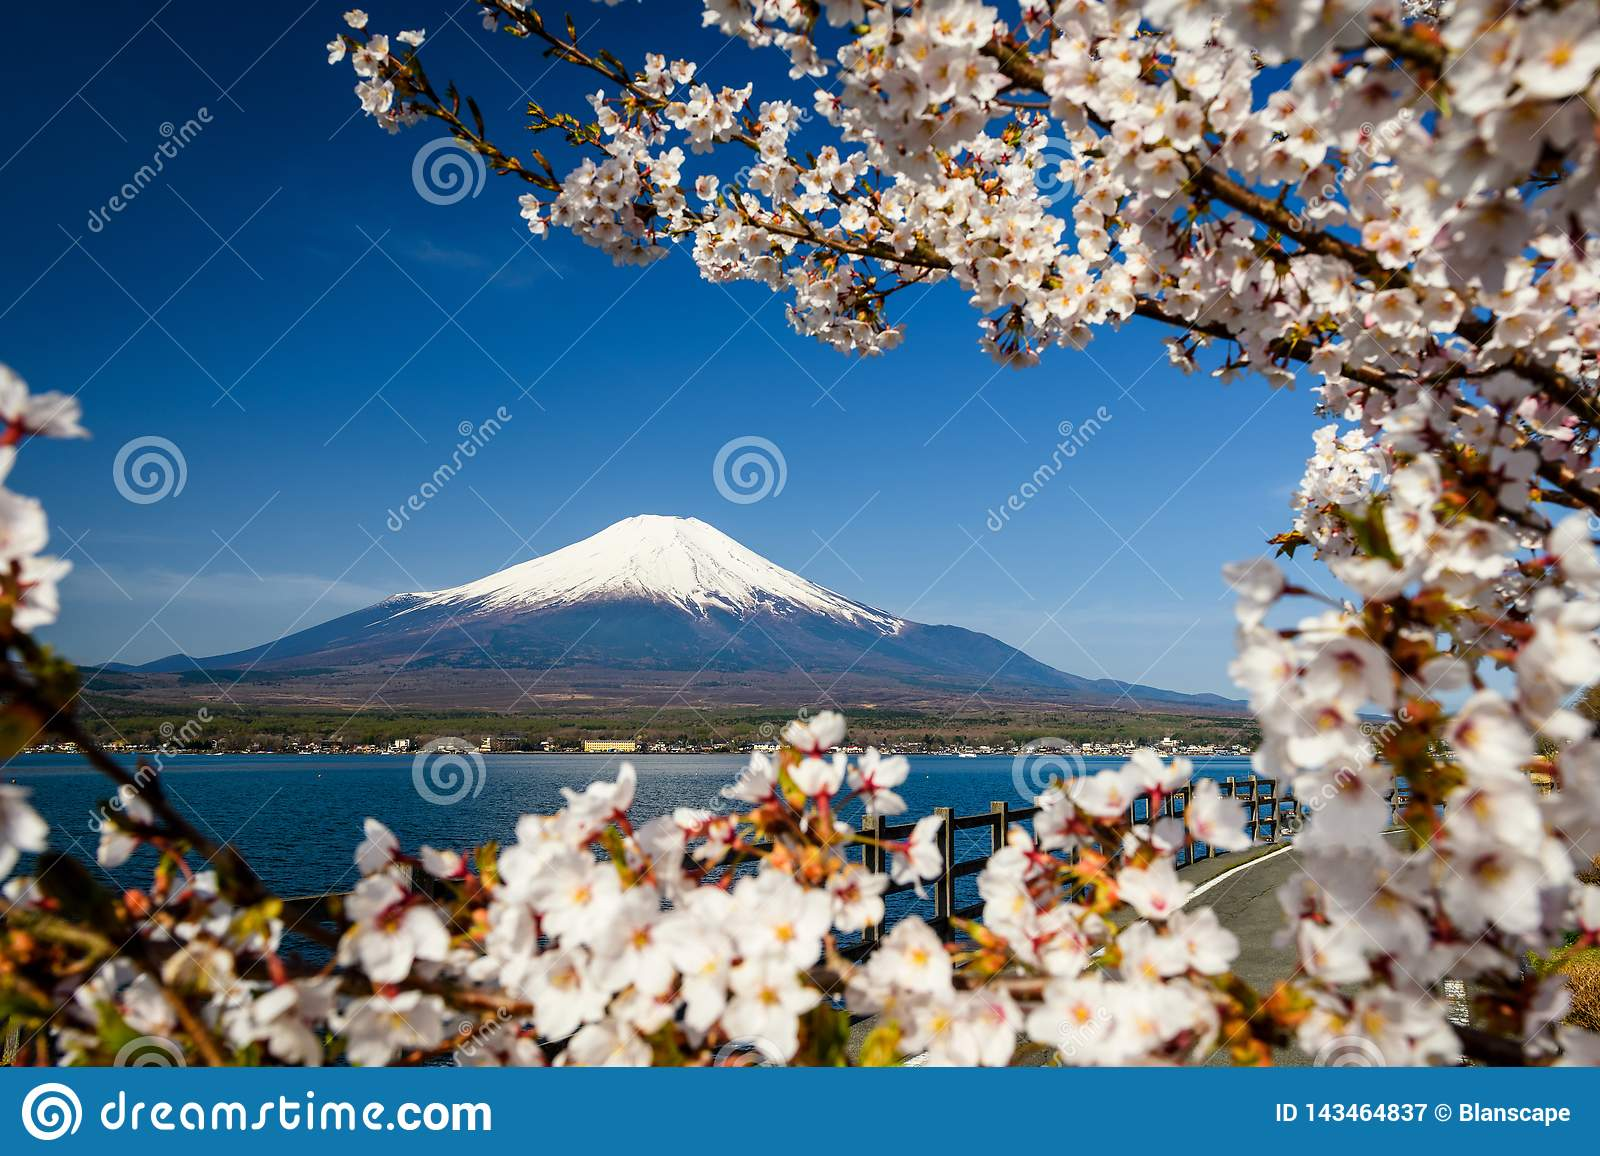 white sakura and mount Fuji at spring